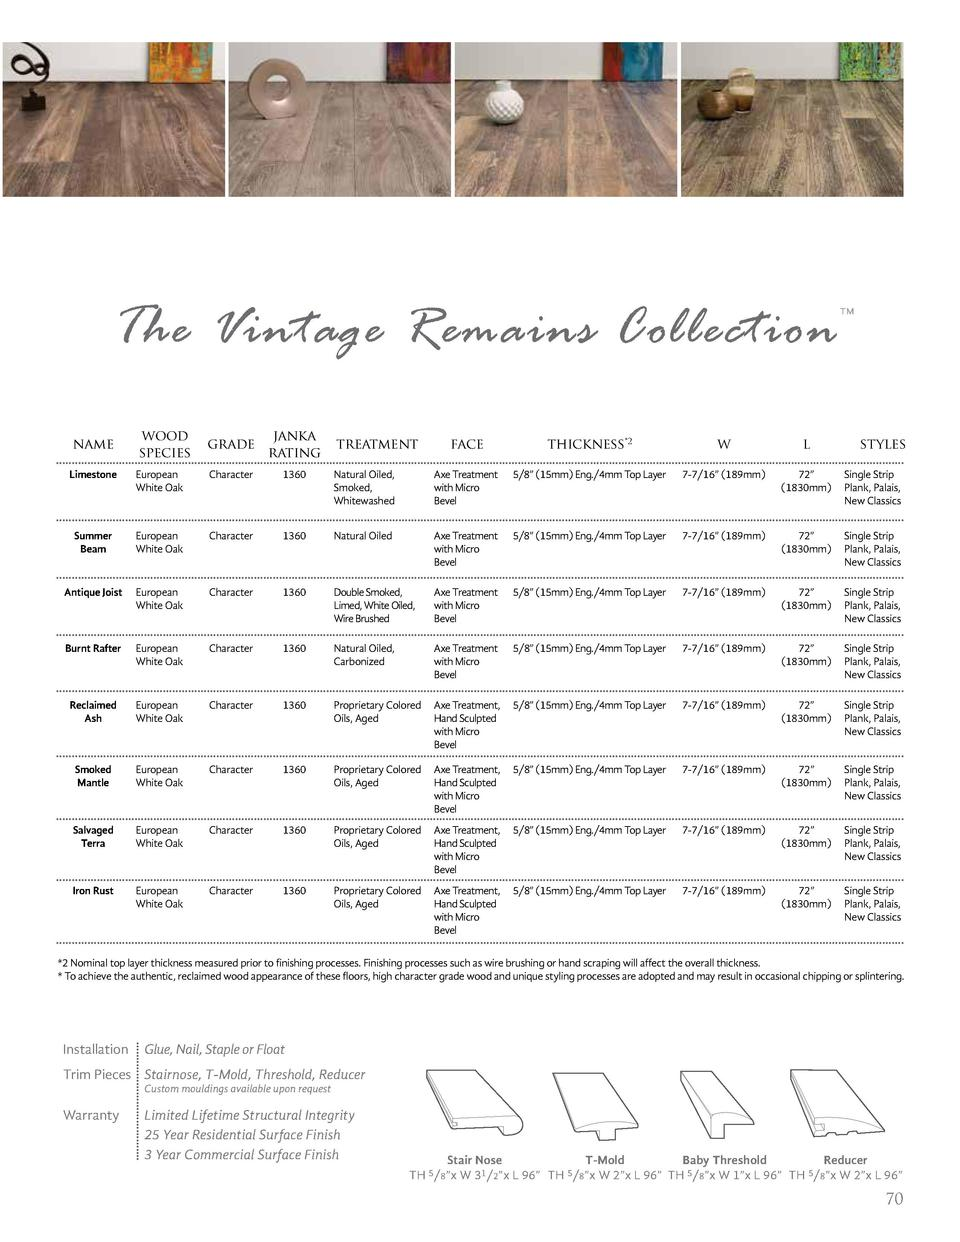 The Vintage Remains Collection name  wood species  grade  janka rating  treatment  face  thickness 2  w  l       styles  L...